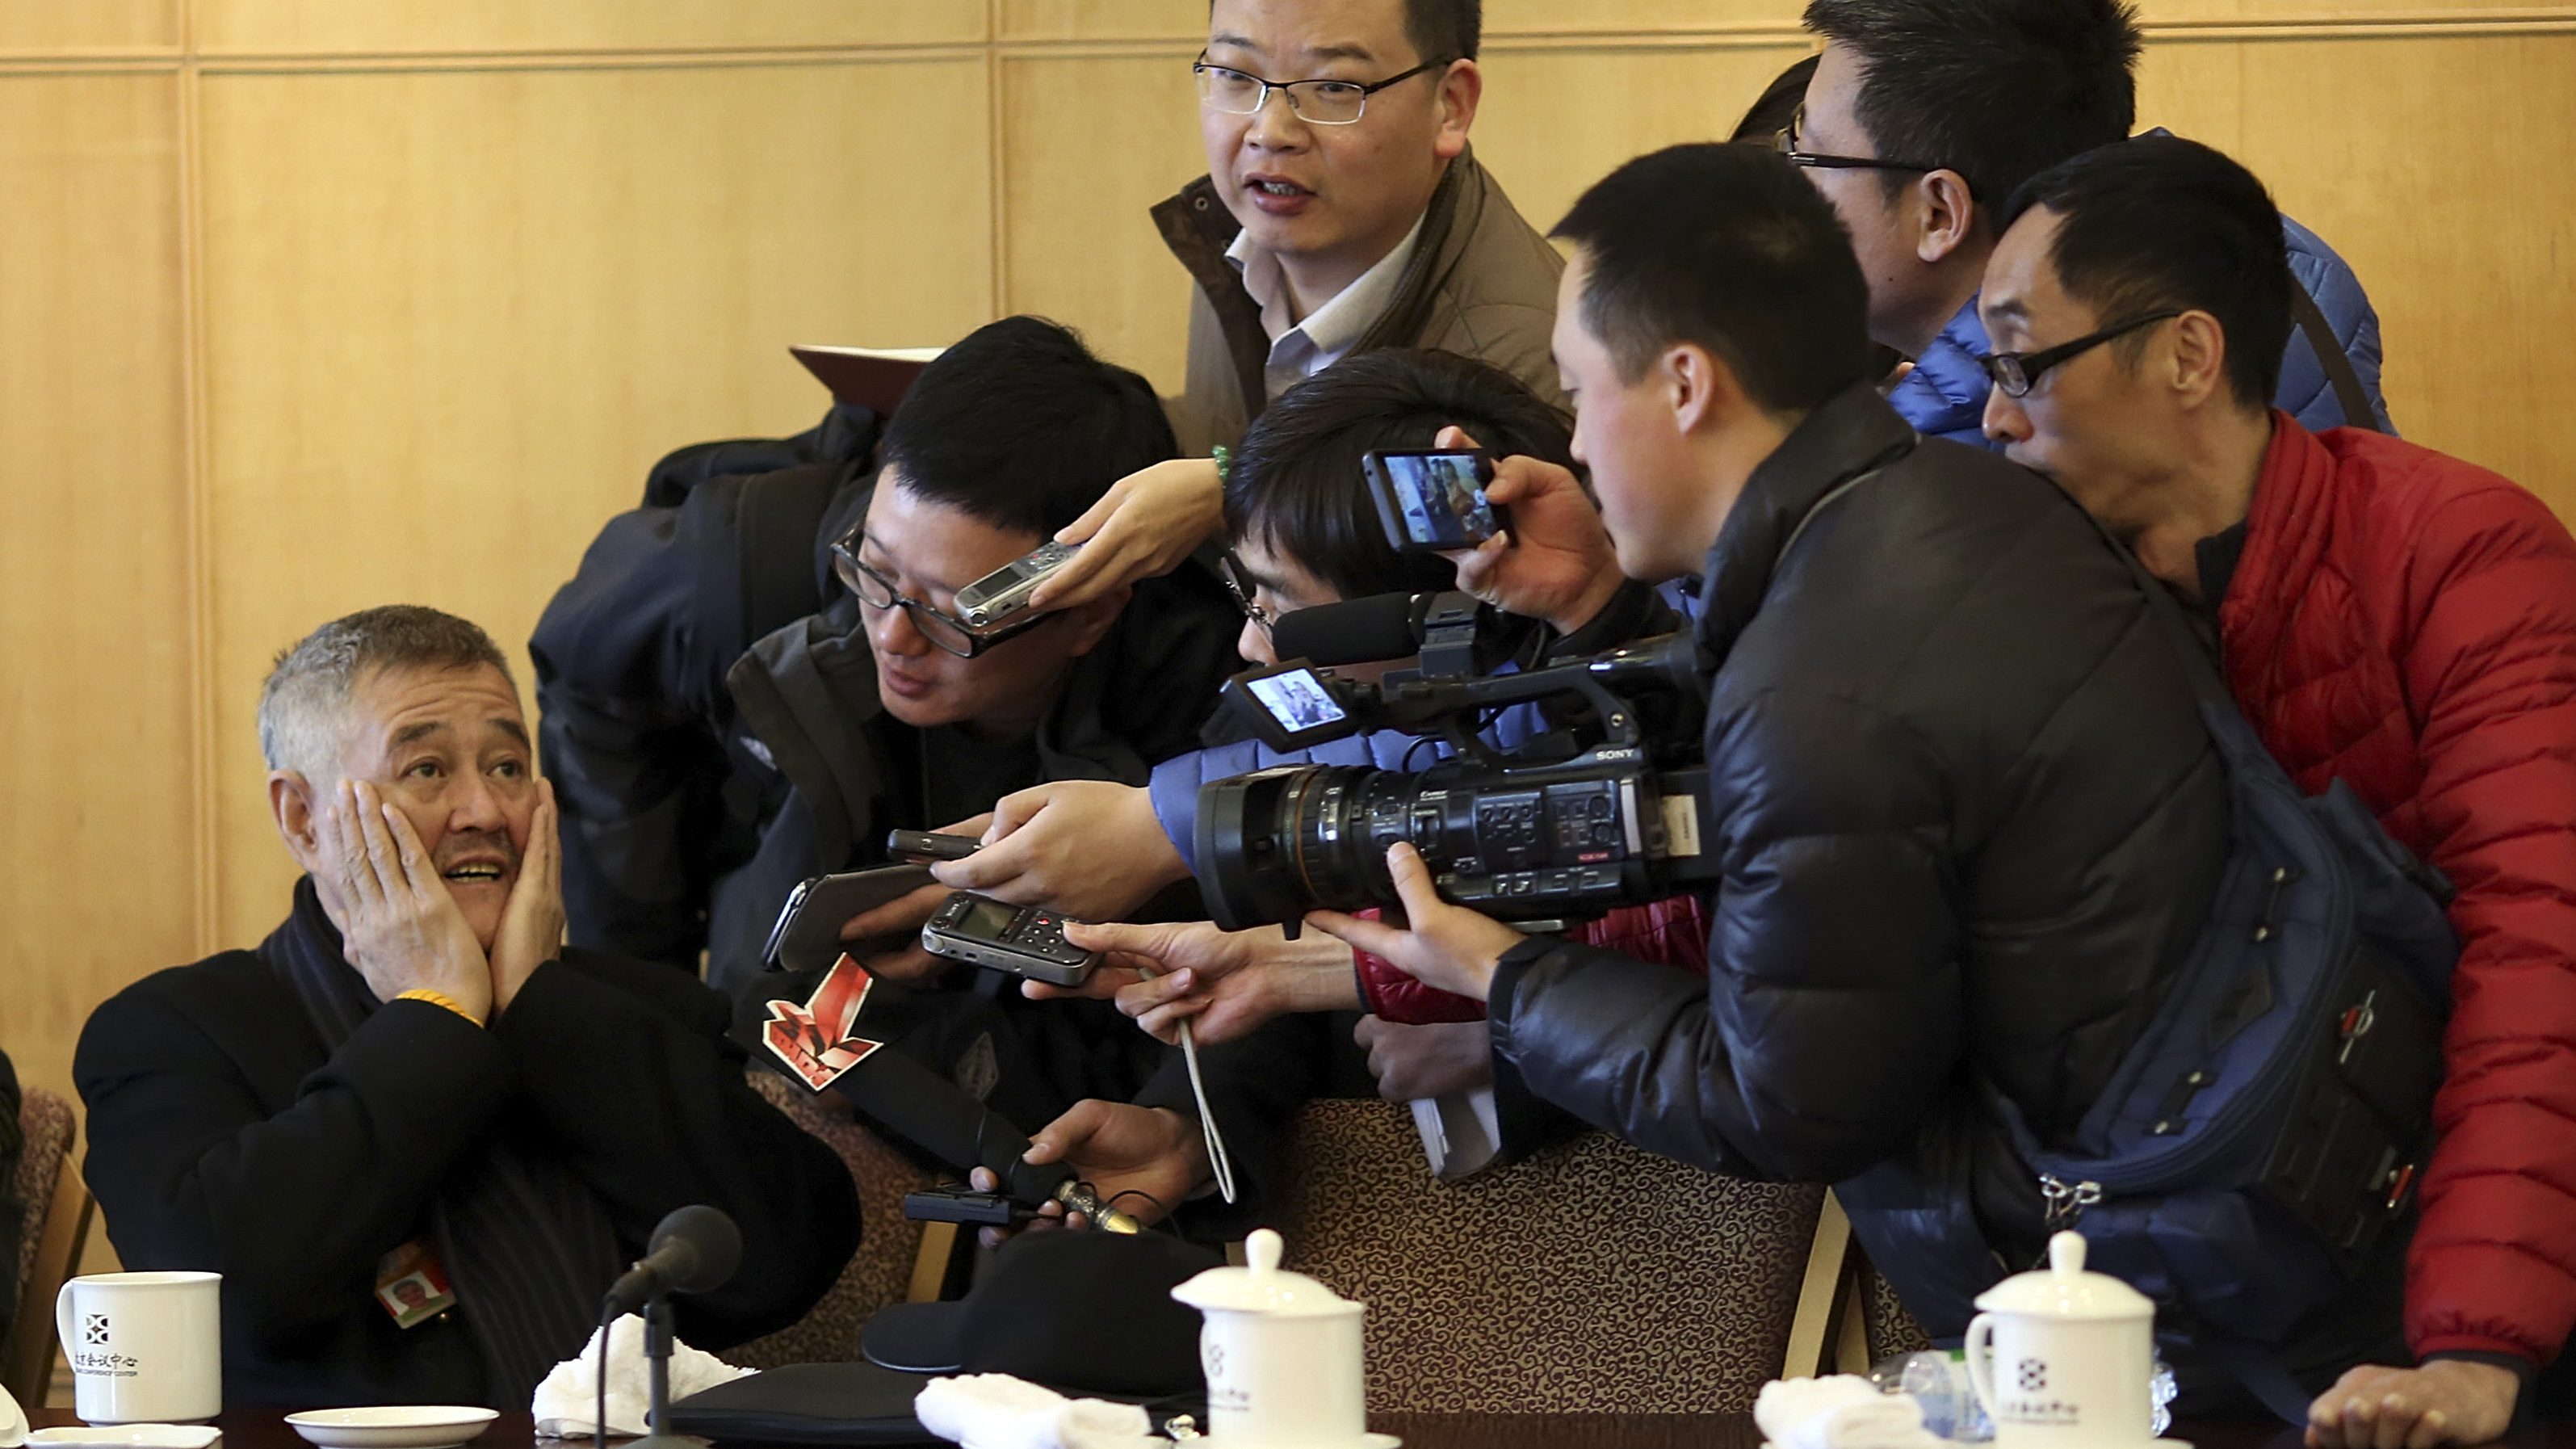 Actor Zhao Benshan (L), also a delegate of Chinese People's Political Consultative Conference (CPPCC), wipes his face as he talks to journalists during a session of the CPPCC, in Beijing, March 4, 2015. REUTERS/Stringer (CHINA - Tags: POLITICS ENTERTAINMENT SOCIETY TPX IMAGES OF THE DAY) CHINA OUT. NO COMMERCIAL OR EDITORIAL SALES IN CHINA - RTR4RYYZ